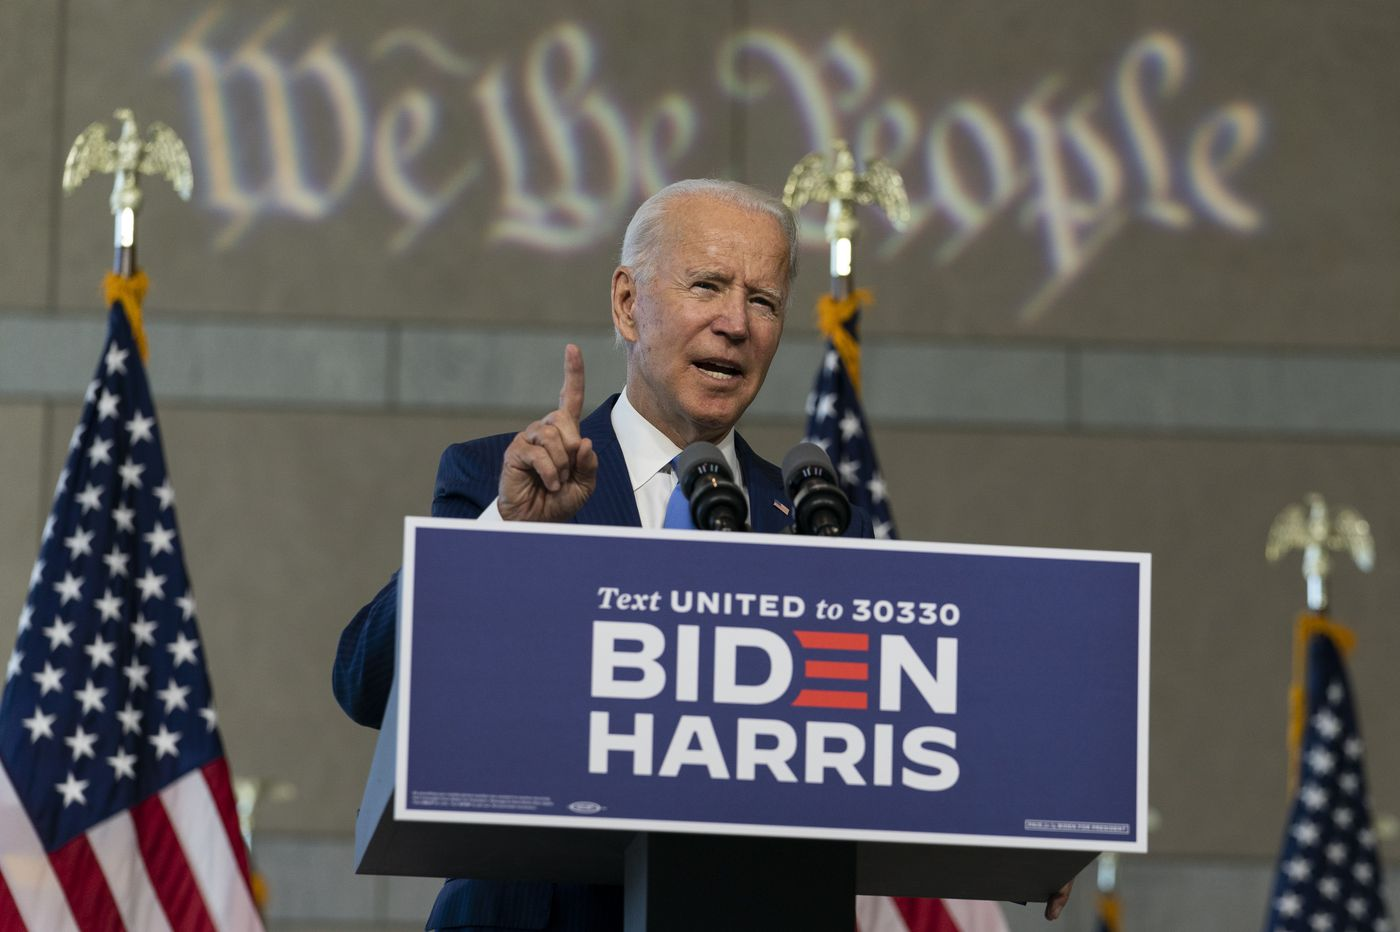 Biden maintains an edge over Trump in new Pa. poll, as pessimism over coronavirus and the economy looms